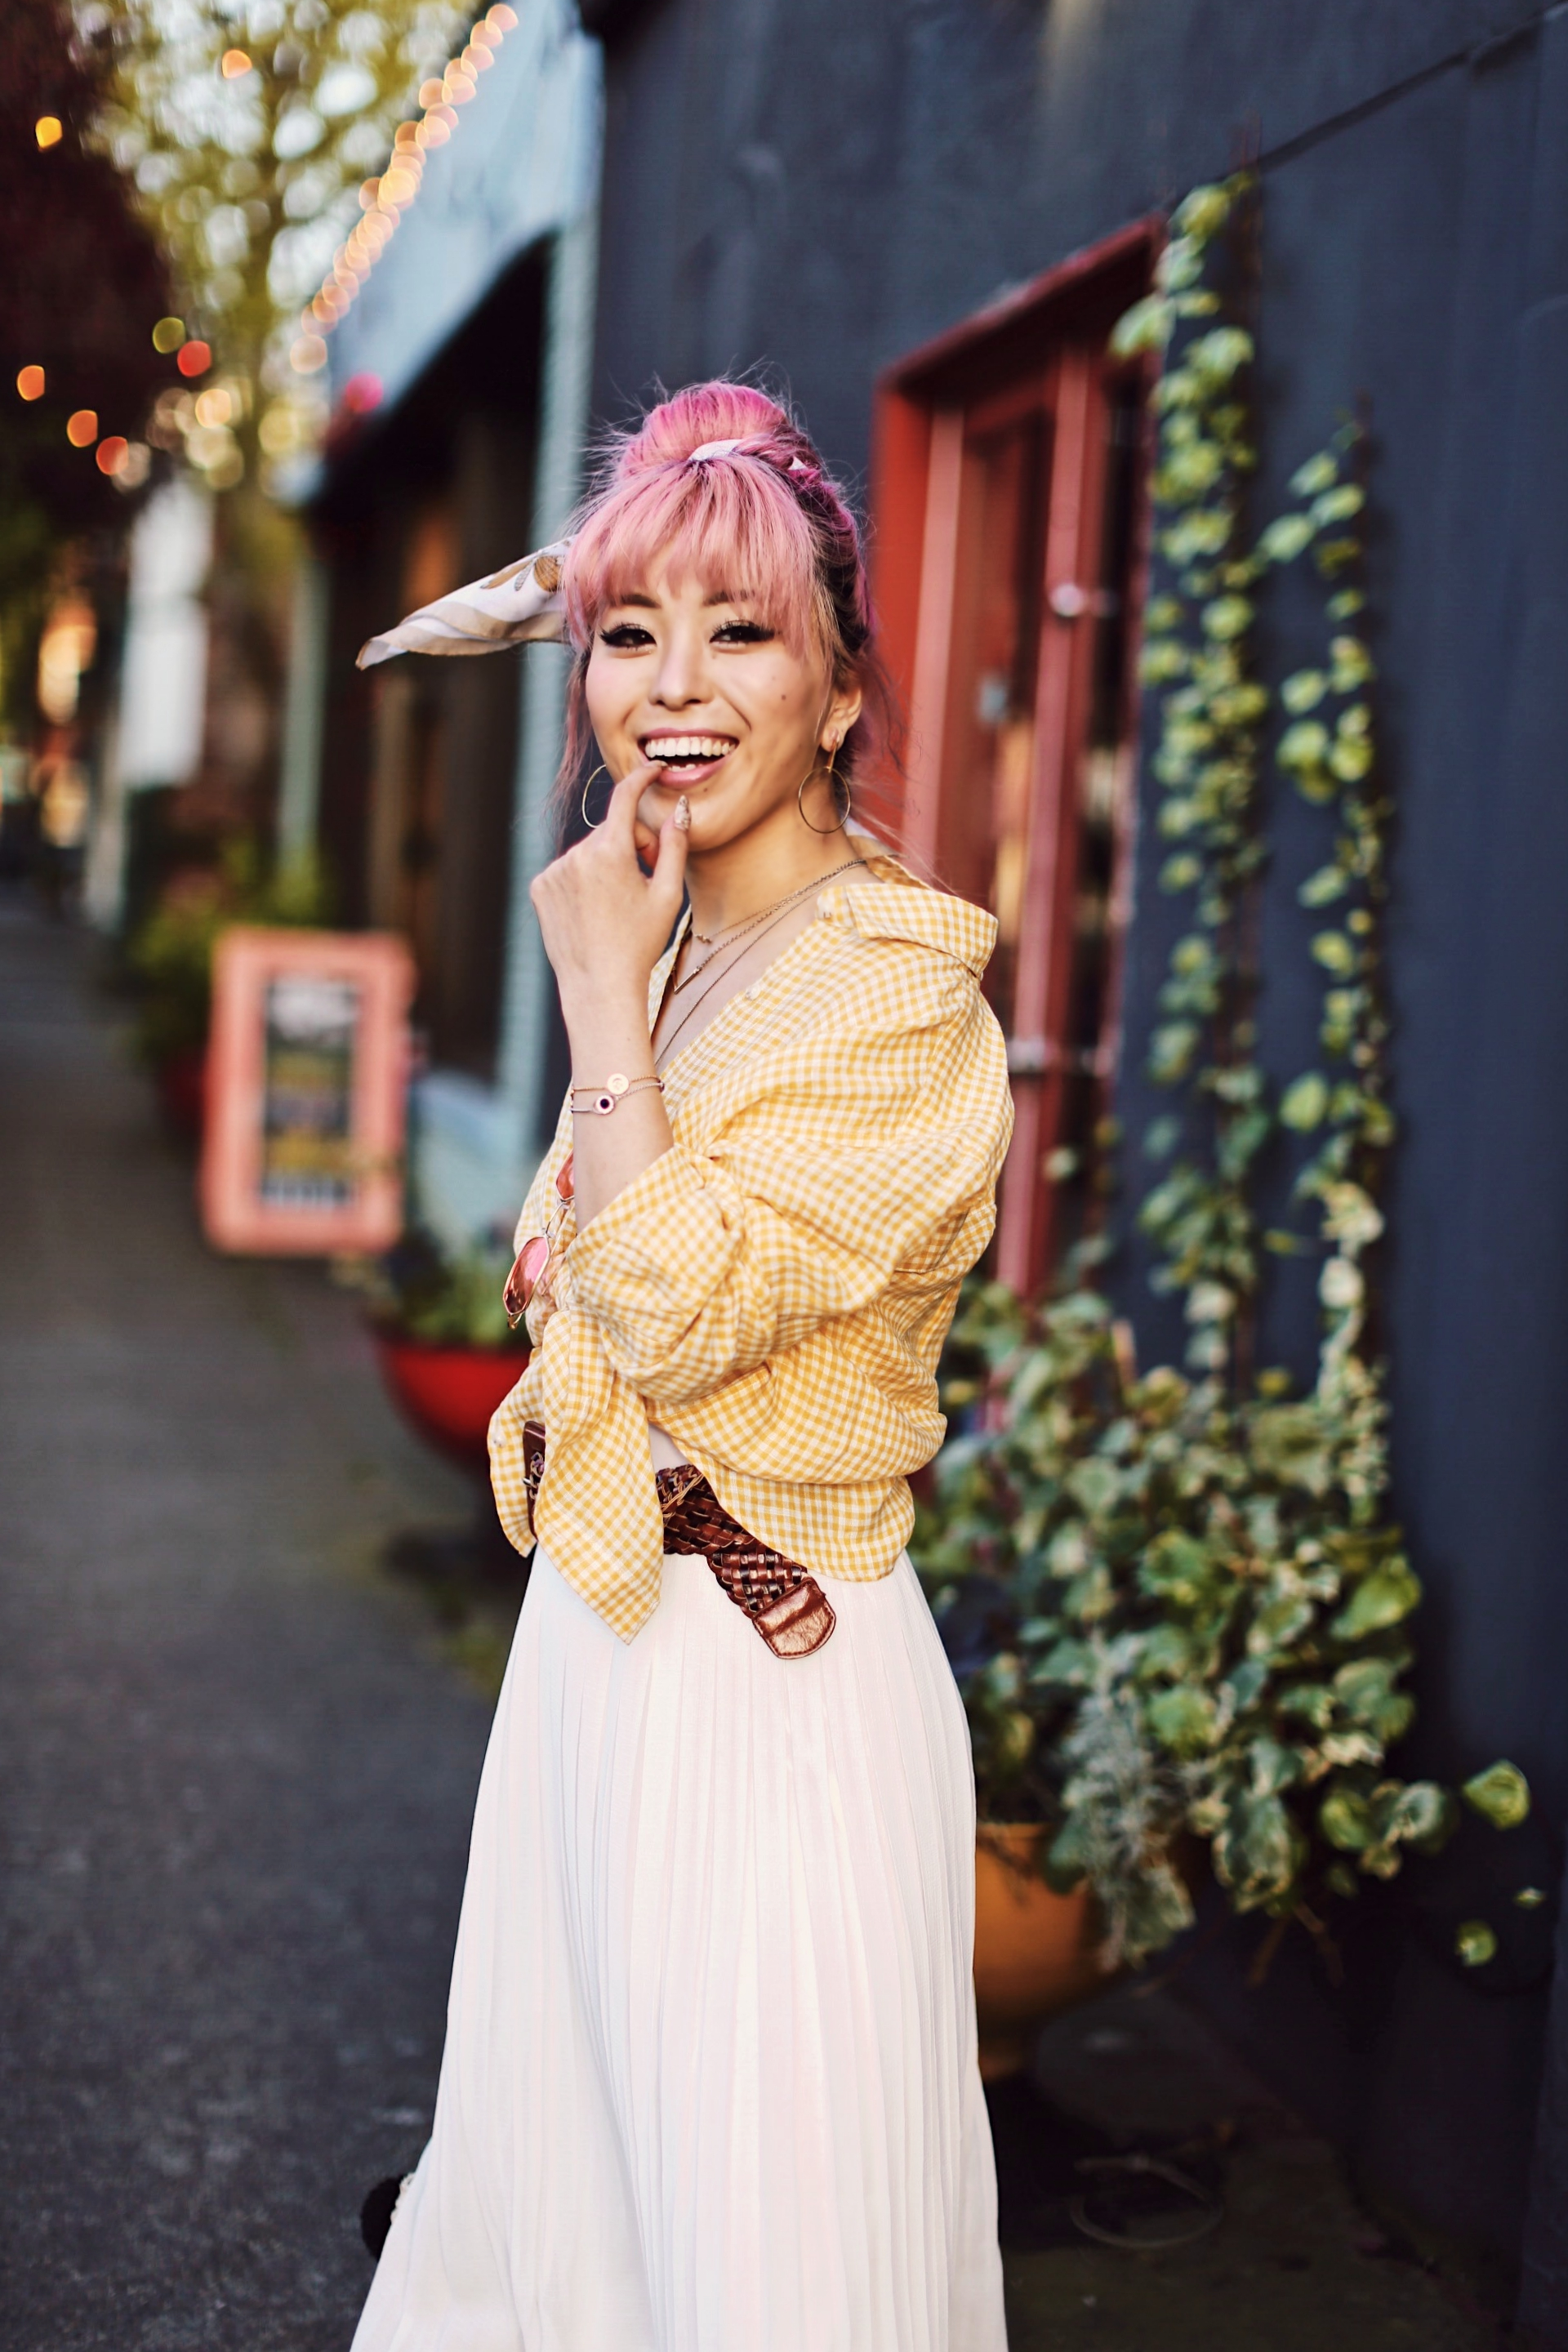 Uniqlo yellow Linen gingham shirt-Uniqlo White pleated chiffon midi skirt-Uniqlo Airism brat-pink tinted sunglasses ZERO UV-She in Pom pom Straw bucket bag-Vintage scarf bun hair style-Steve Madden Belt-Jane and the shoe denim oxford platforms-Aika's Love Closet-seattle fashion style blogger-Japanese-pink hair-smiling-spring fashion 18